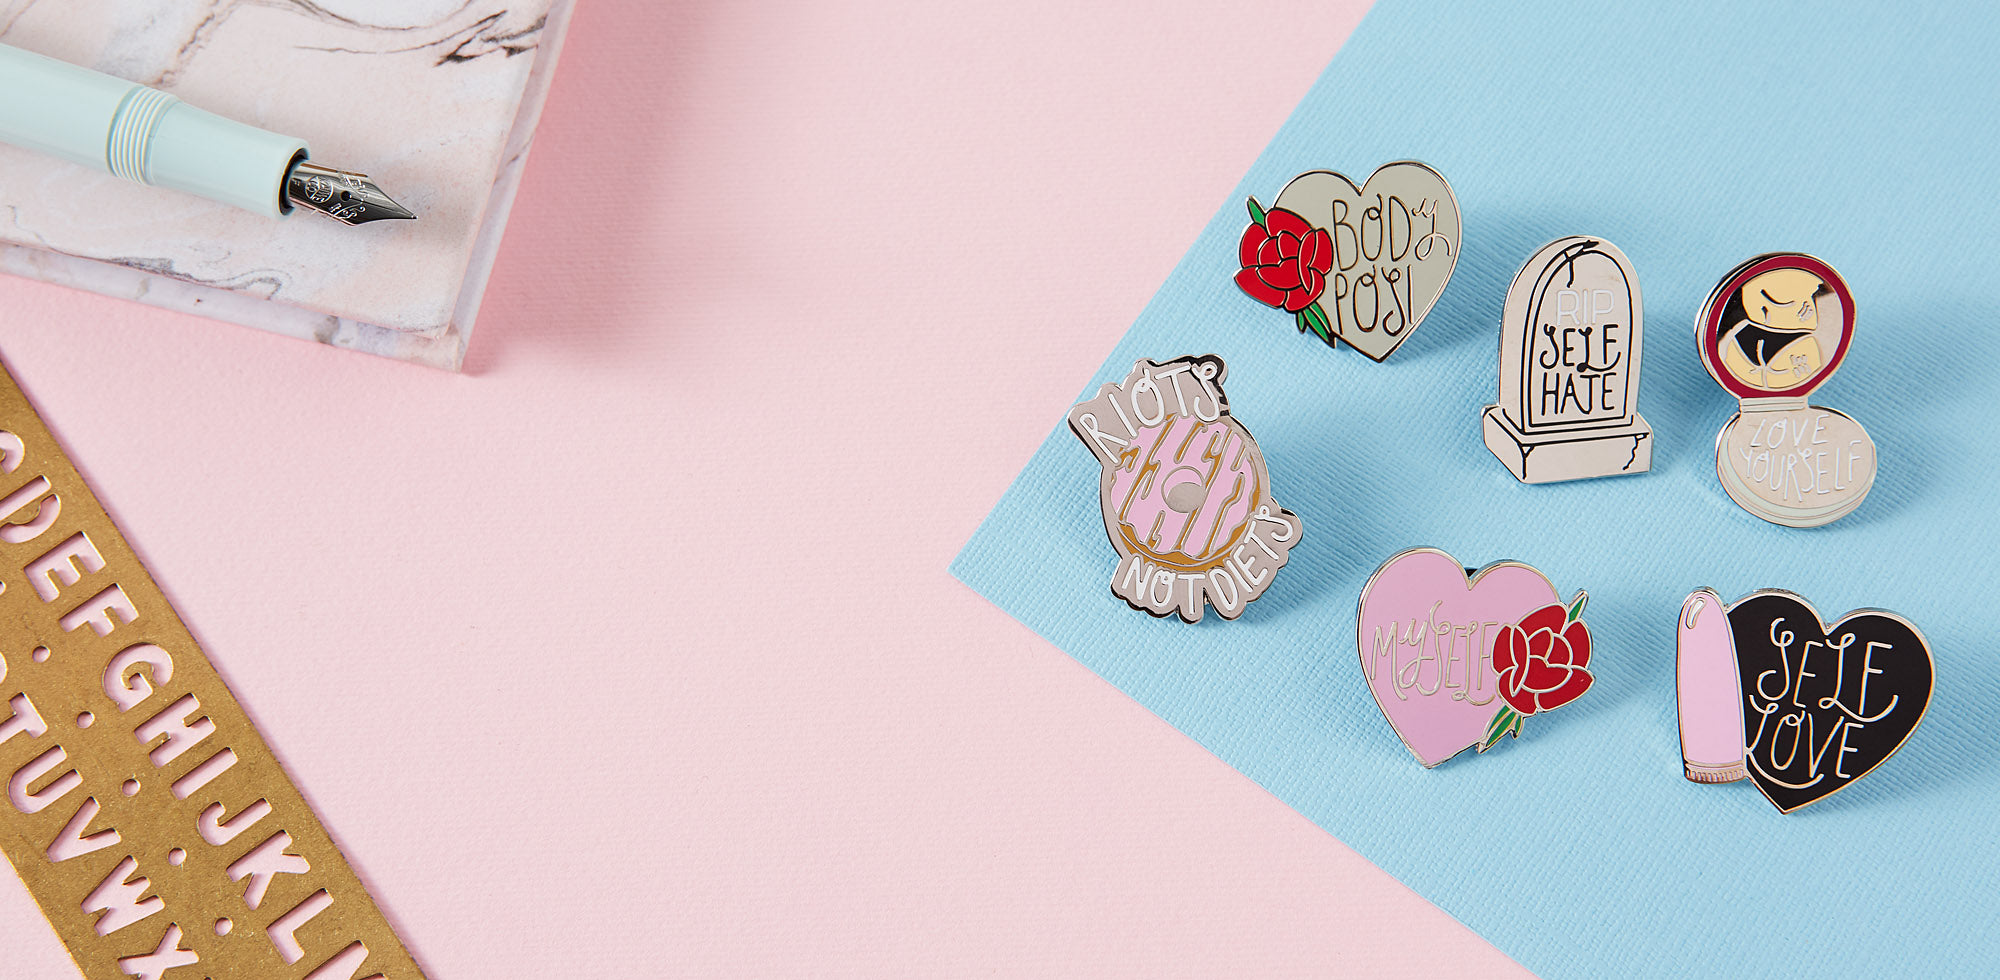 Cool Pins, Jacket Pins, Backpack Pins, Free Delivery Available